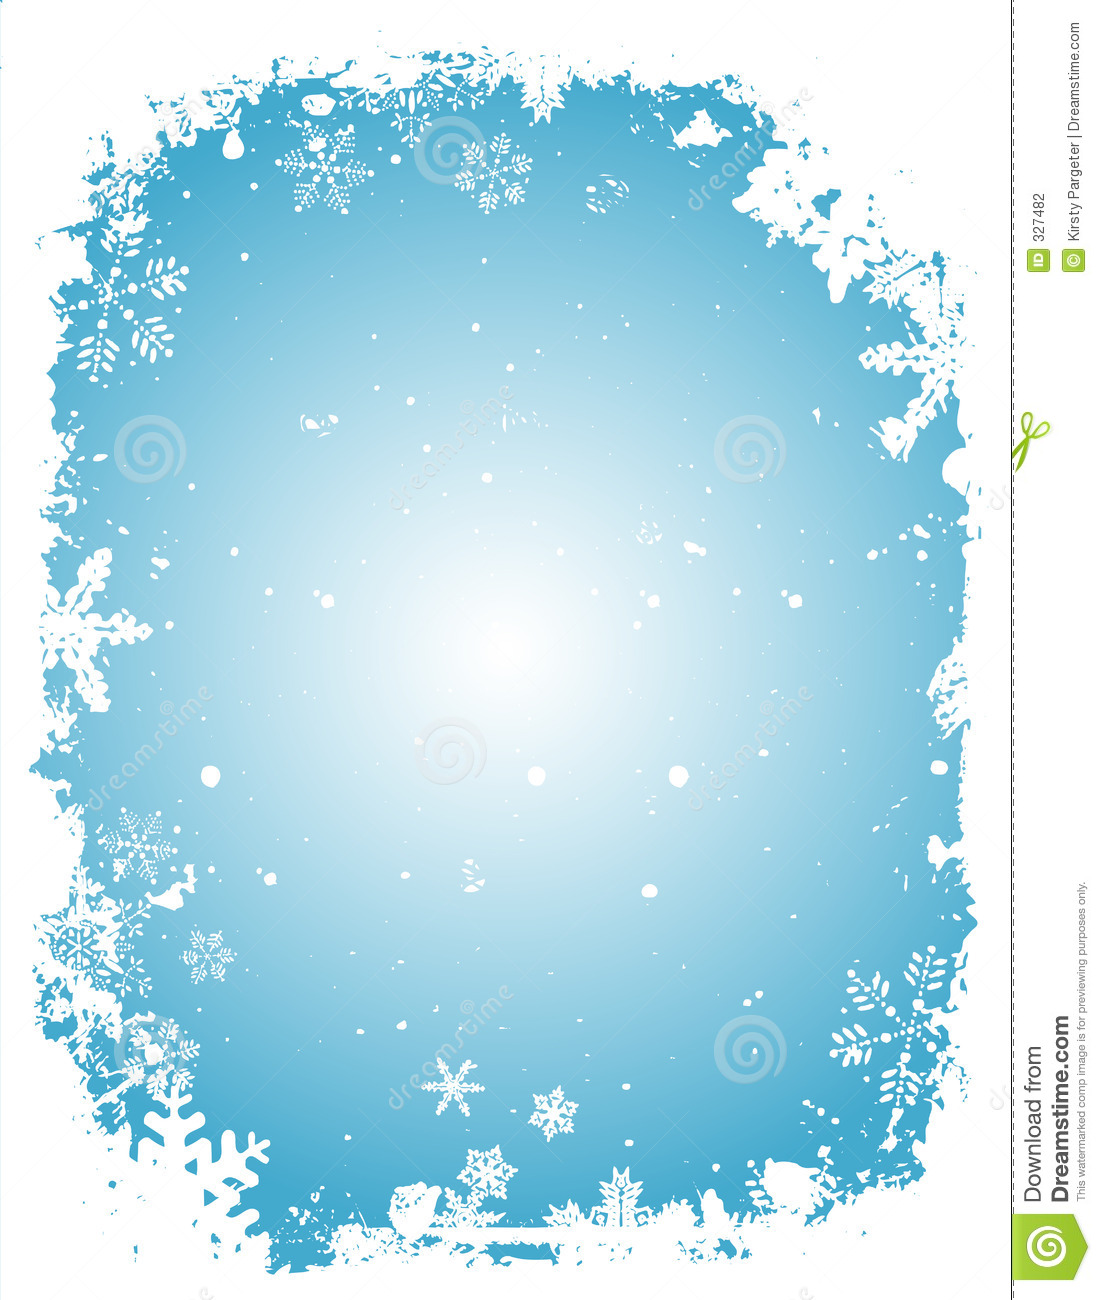 Winter themed background with grungey snowflake border.